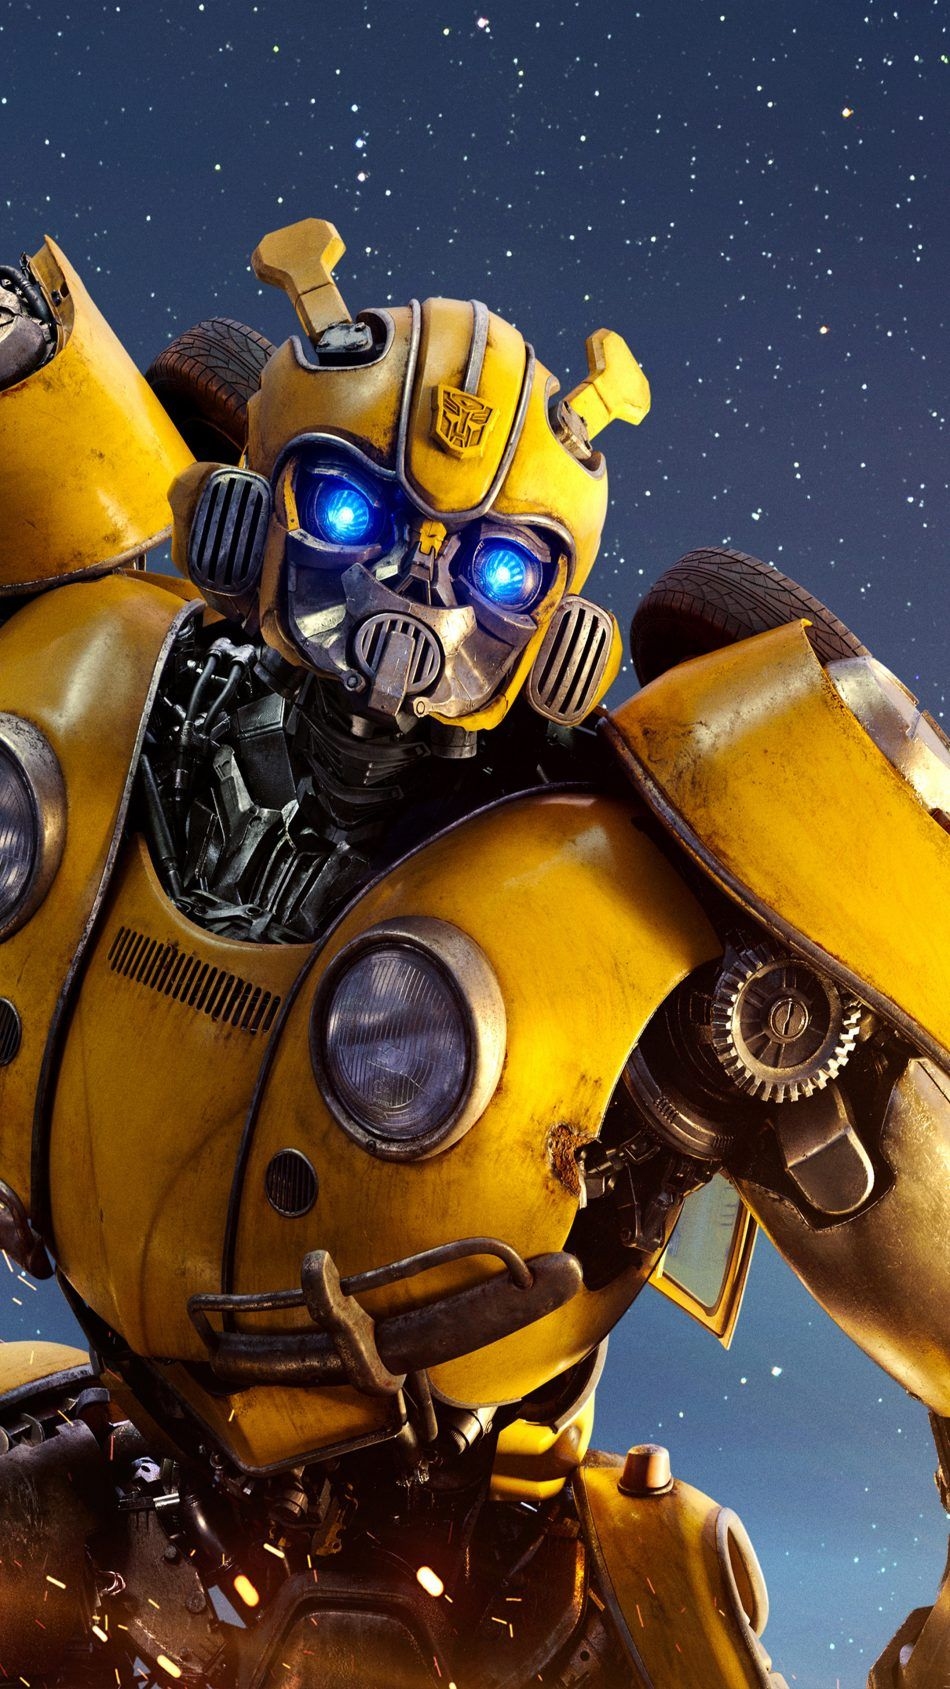 Bumblebee 2018 Transformers Bumblebee Transformers Art Movie